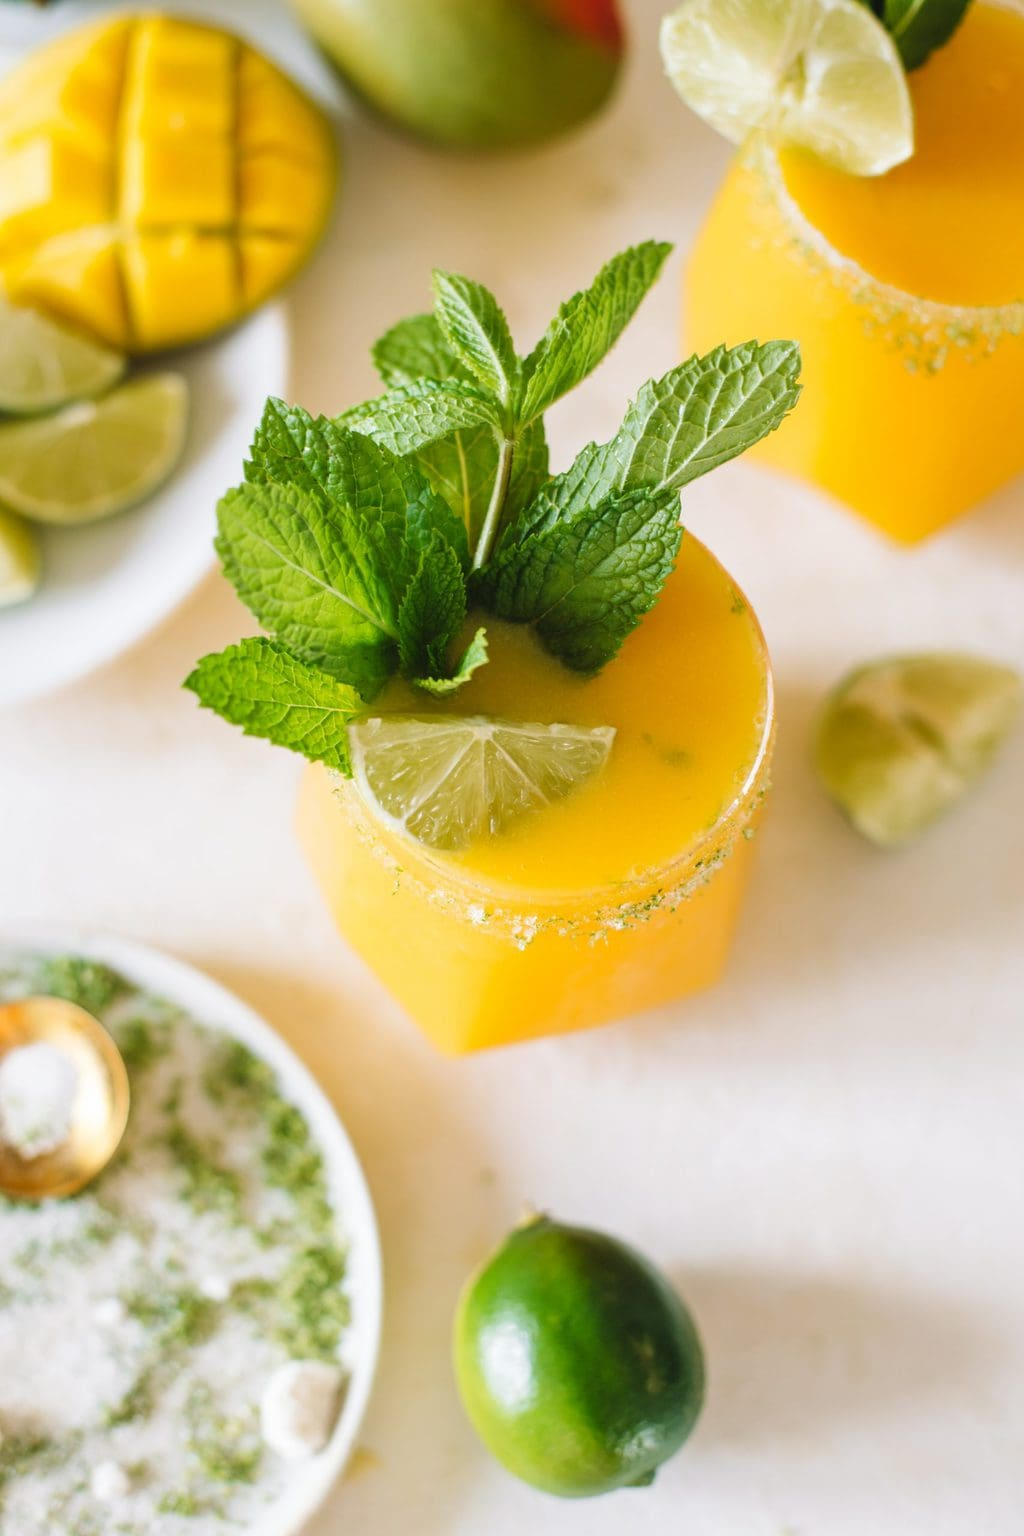 A frozen mango daiquiri with a fresh mint sprig and a lime wedge.